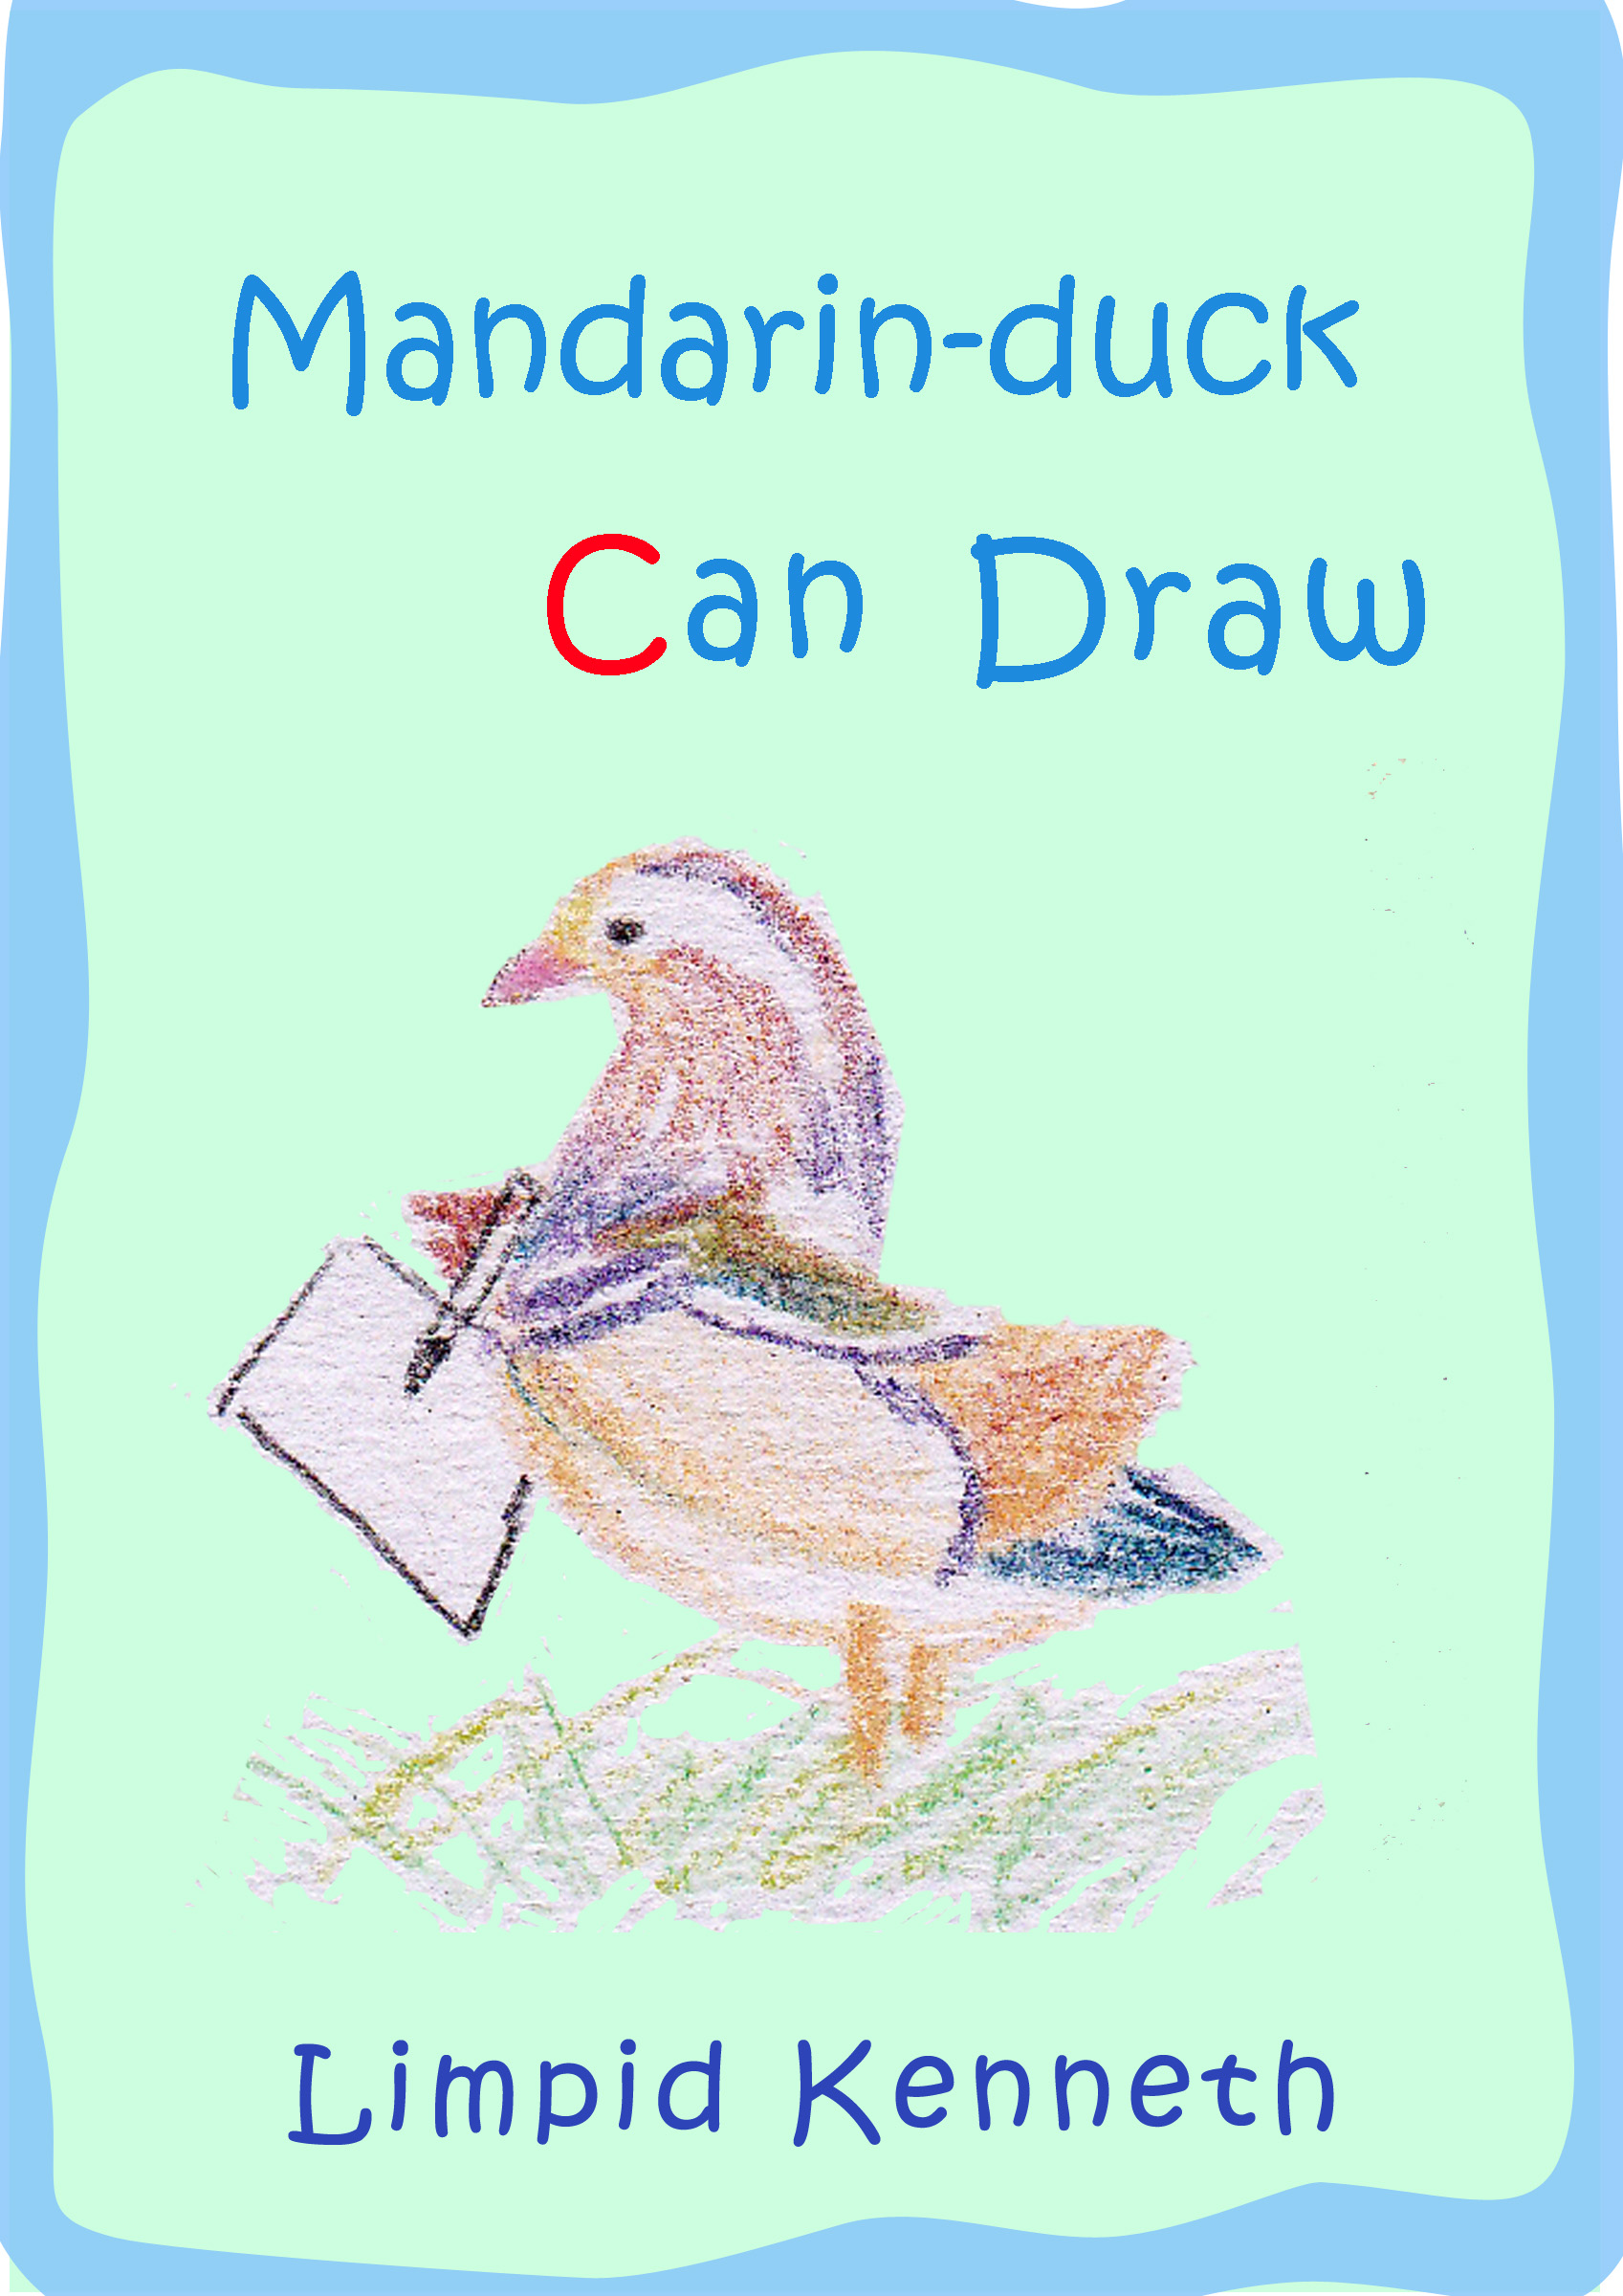 Limpid Kenneth - Mandarin-duck Can Draw